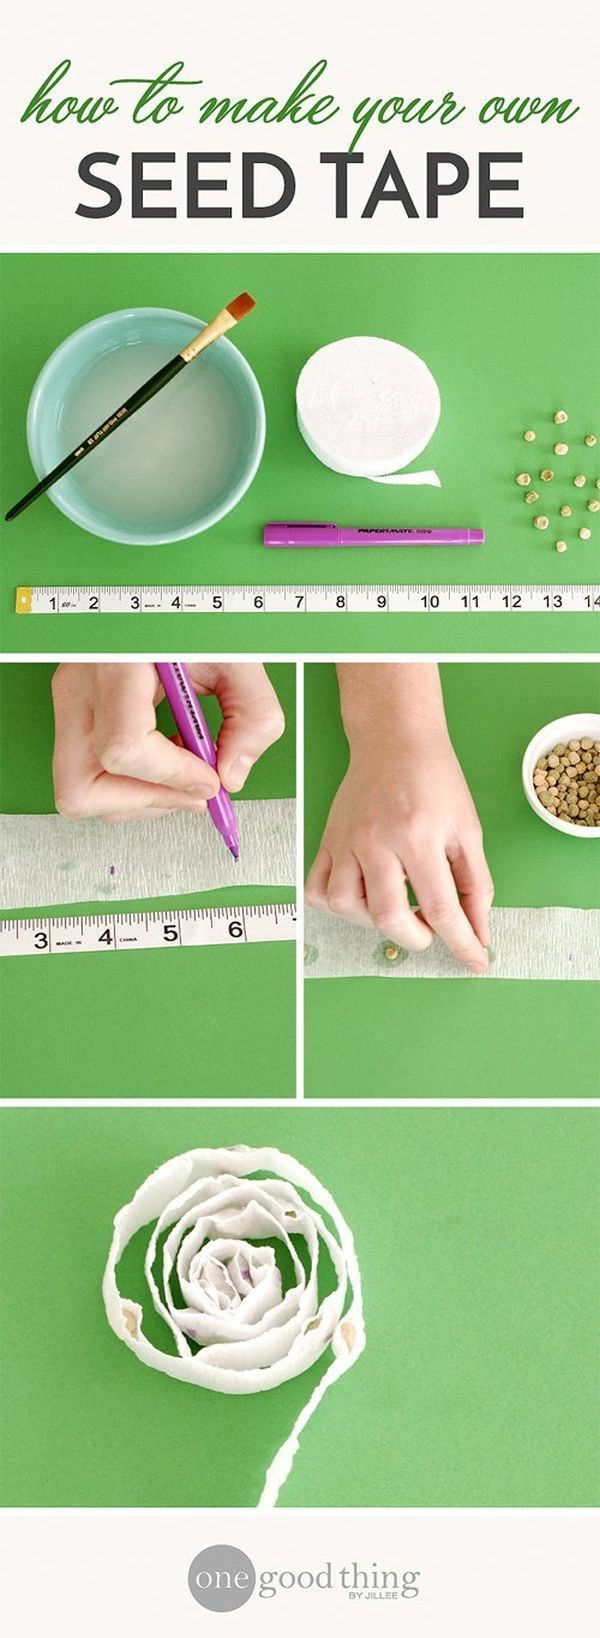 Instead of spending money on the seed tape to buy one, make your own! With DIY SEED TAPE idea given here!